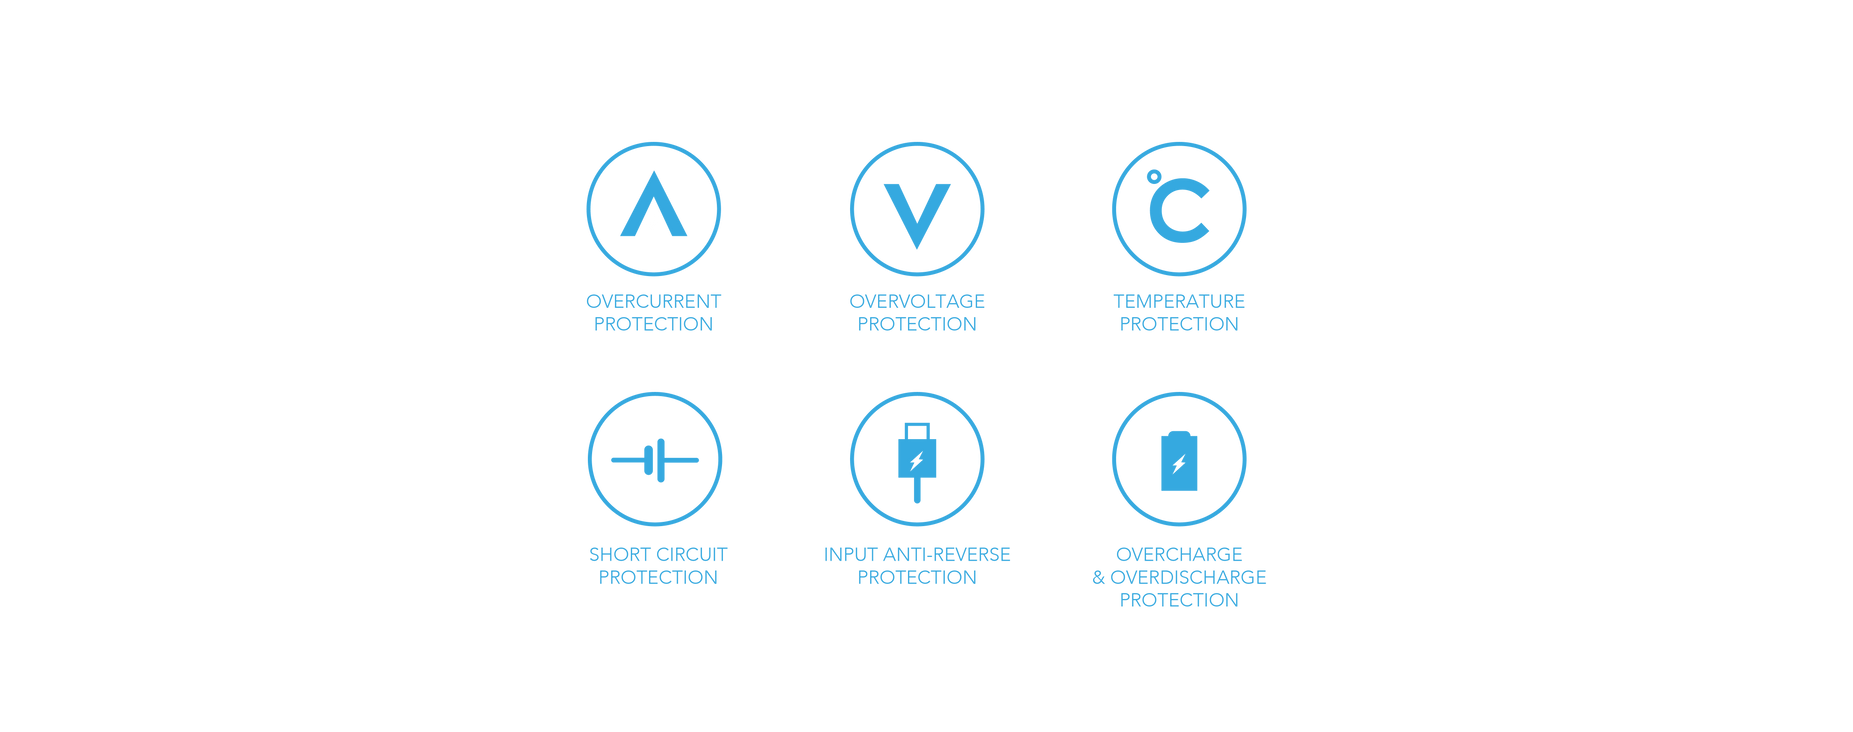 Protection Icons-01.png